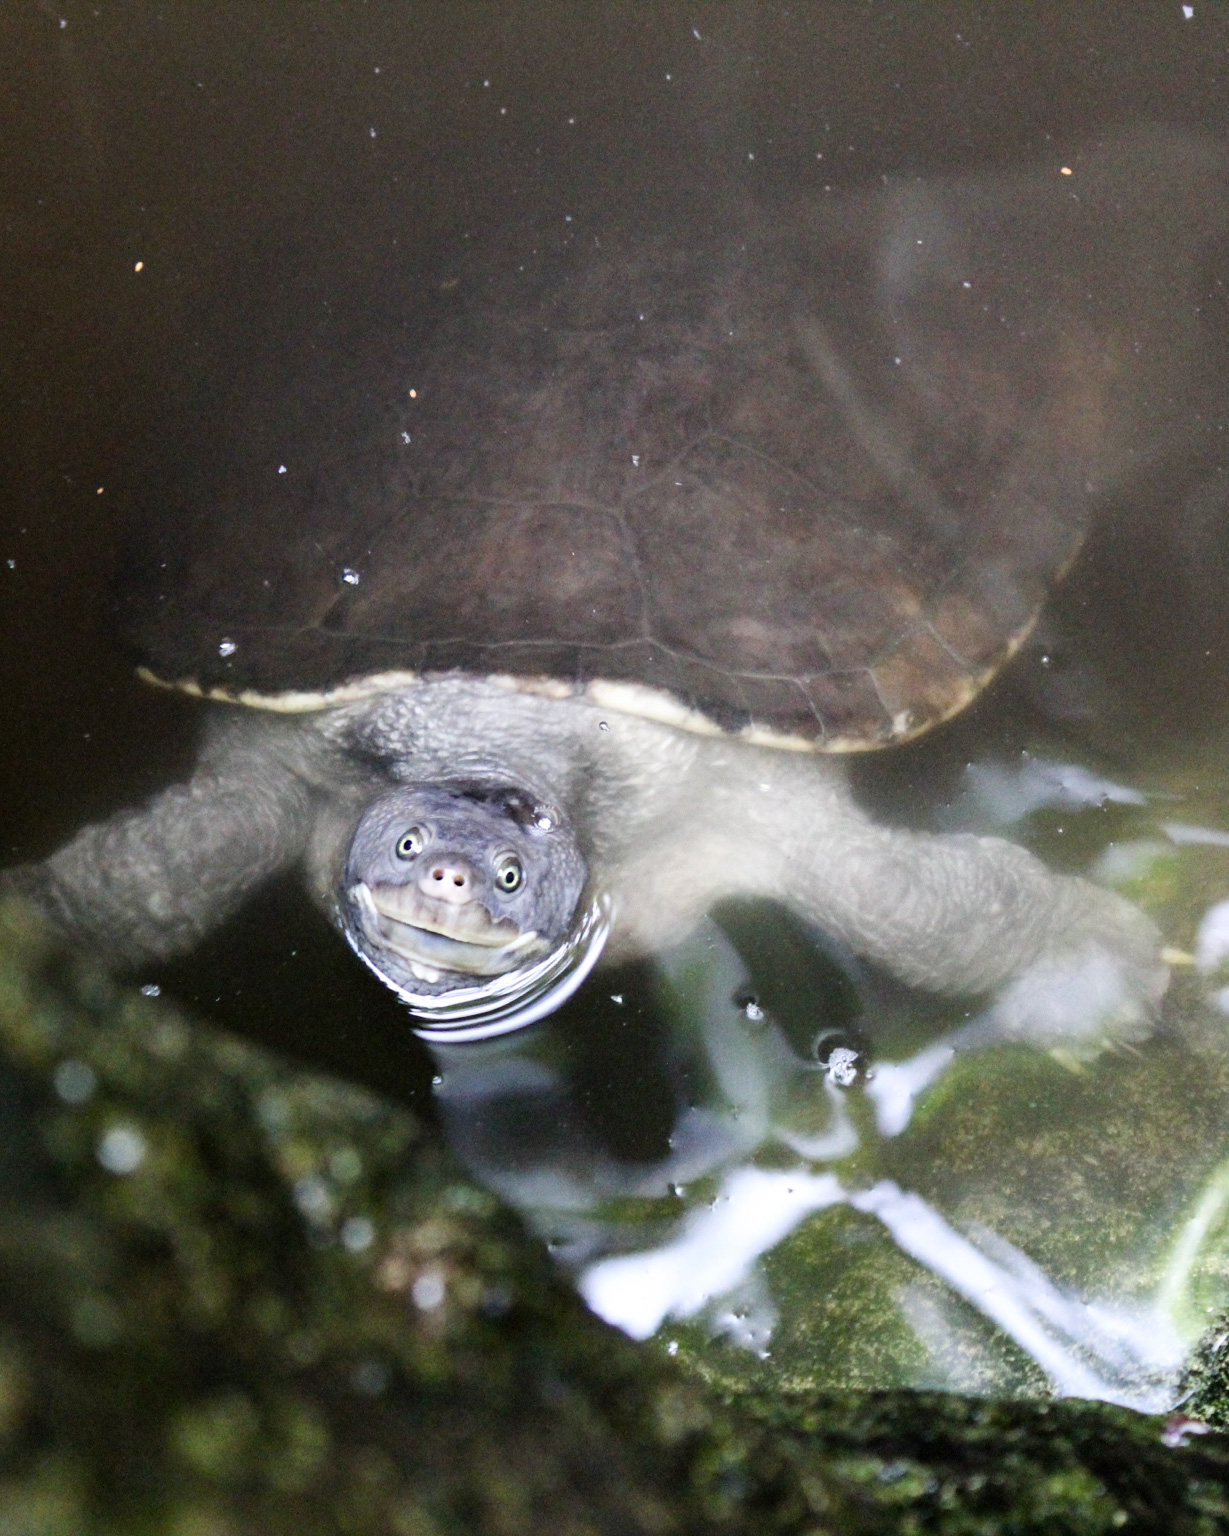 photo of a cute turtle from the Bermuda aquarium and zoo.